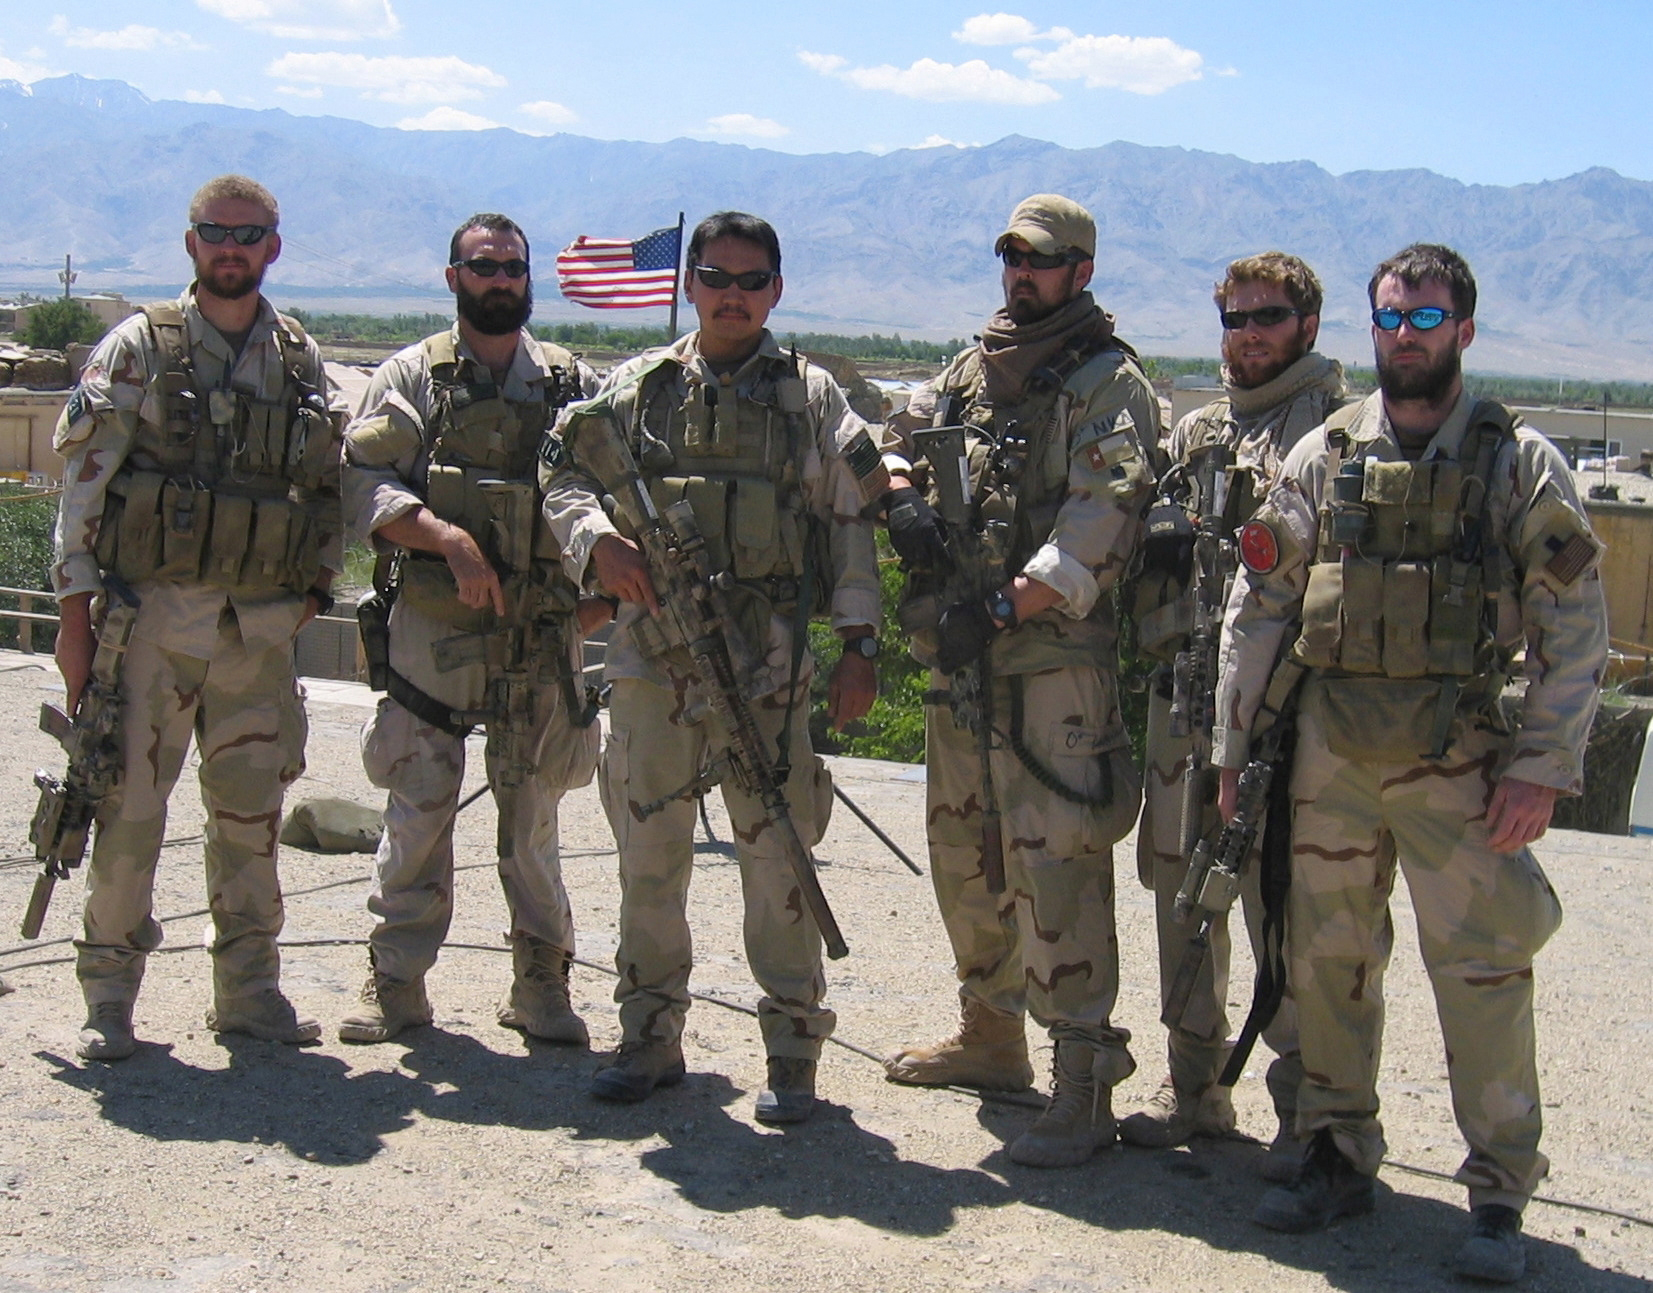 http://upload.wikimedia.org/wikipedia/commons/4/4c/Navy_SEALs_in_Afghanistan_prior_to_Red_Wing.jpg